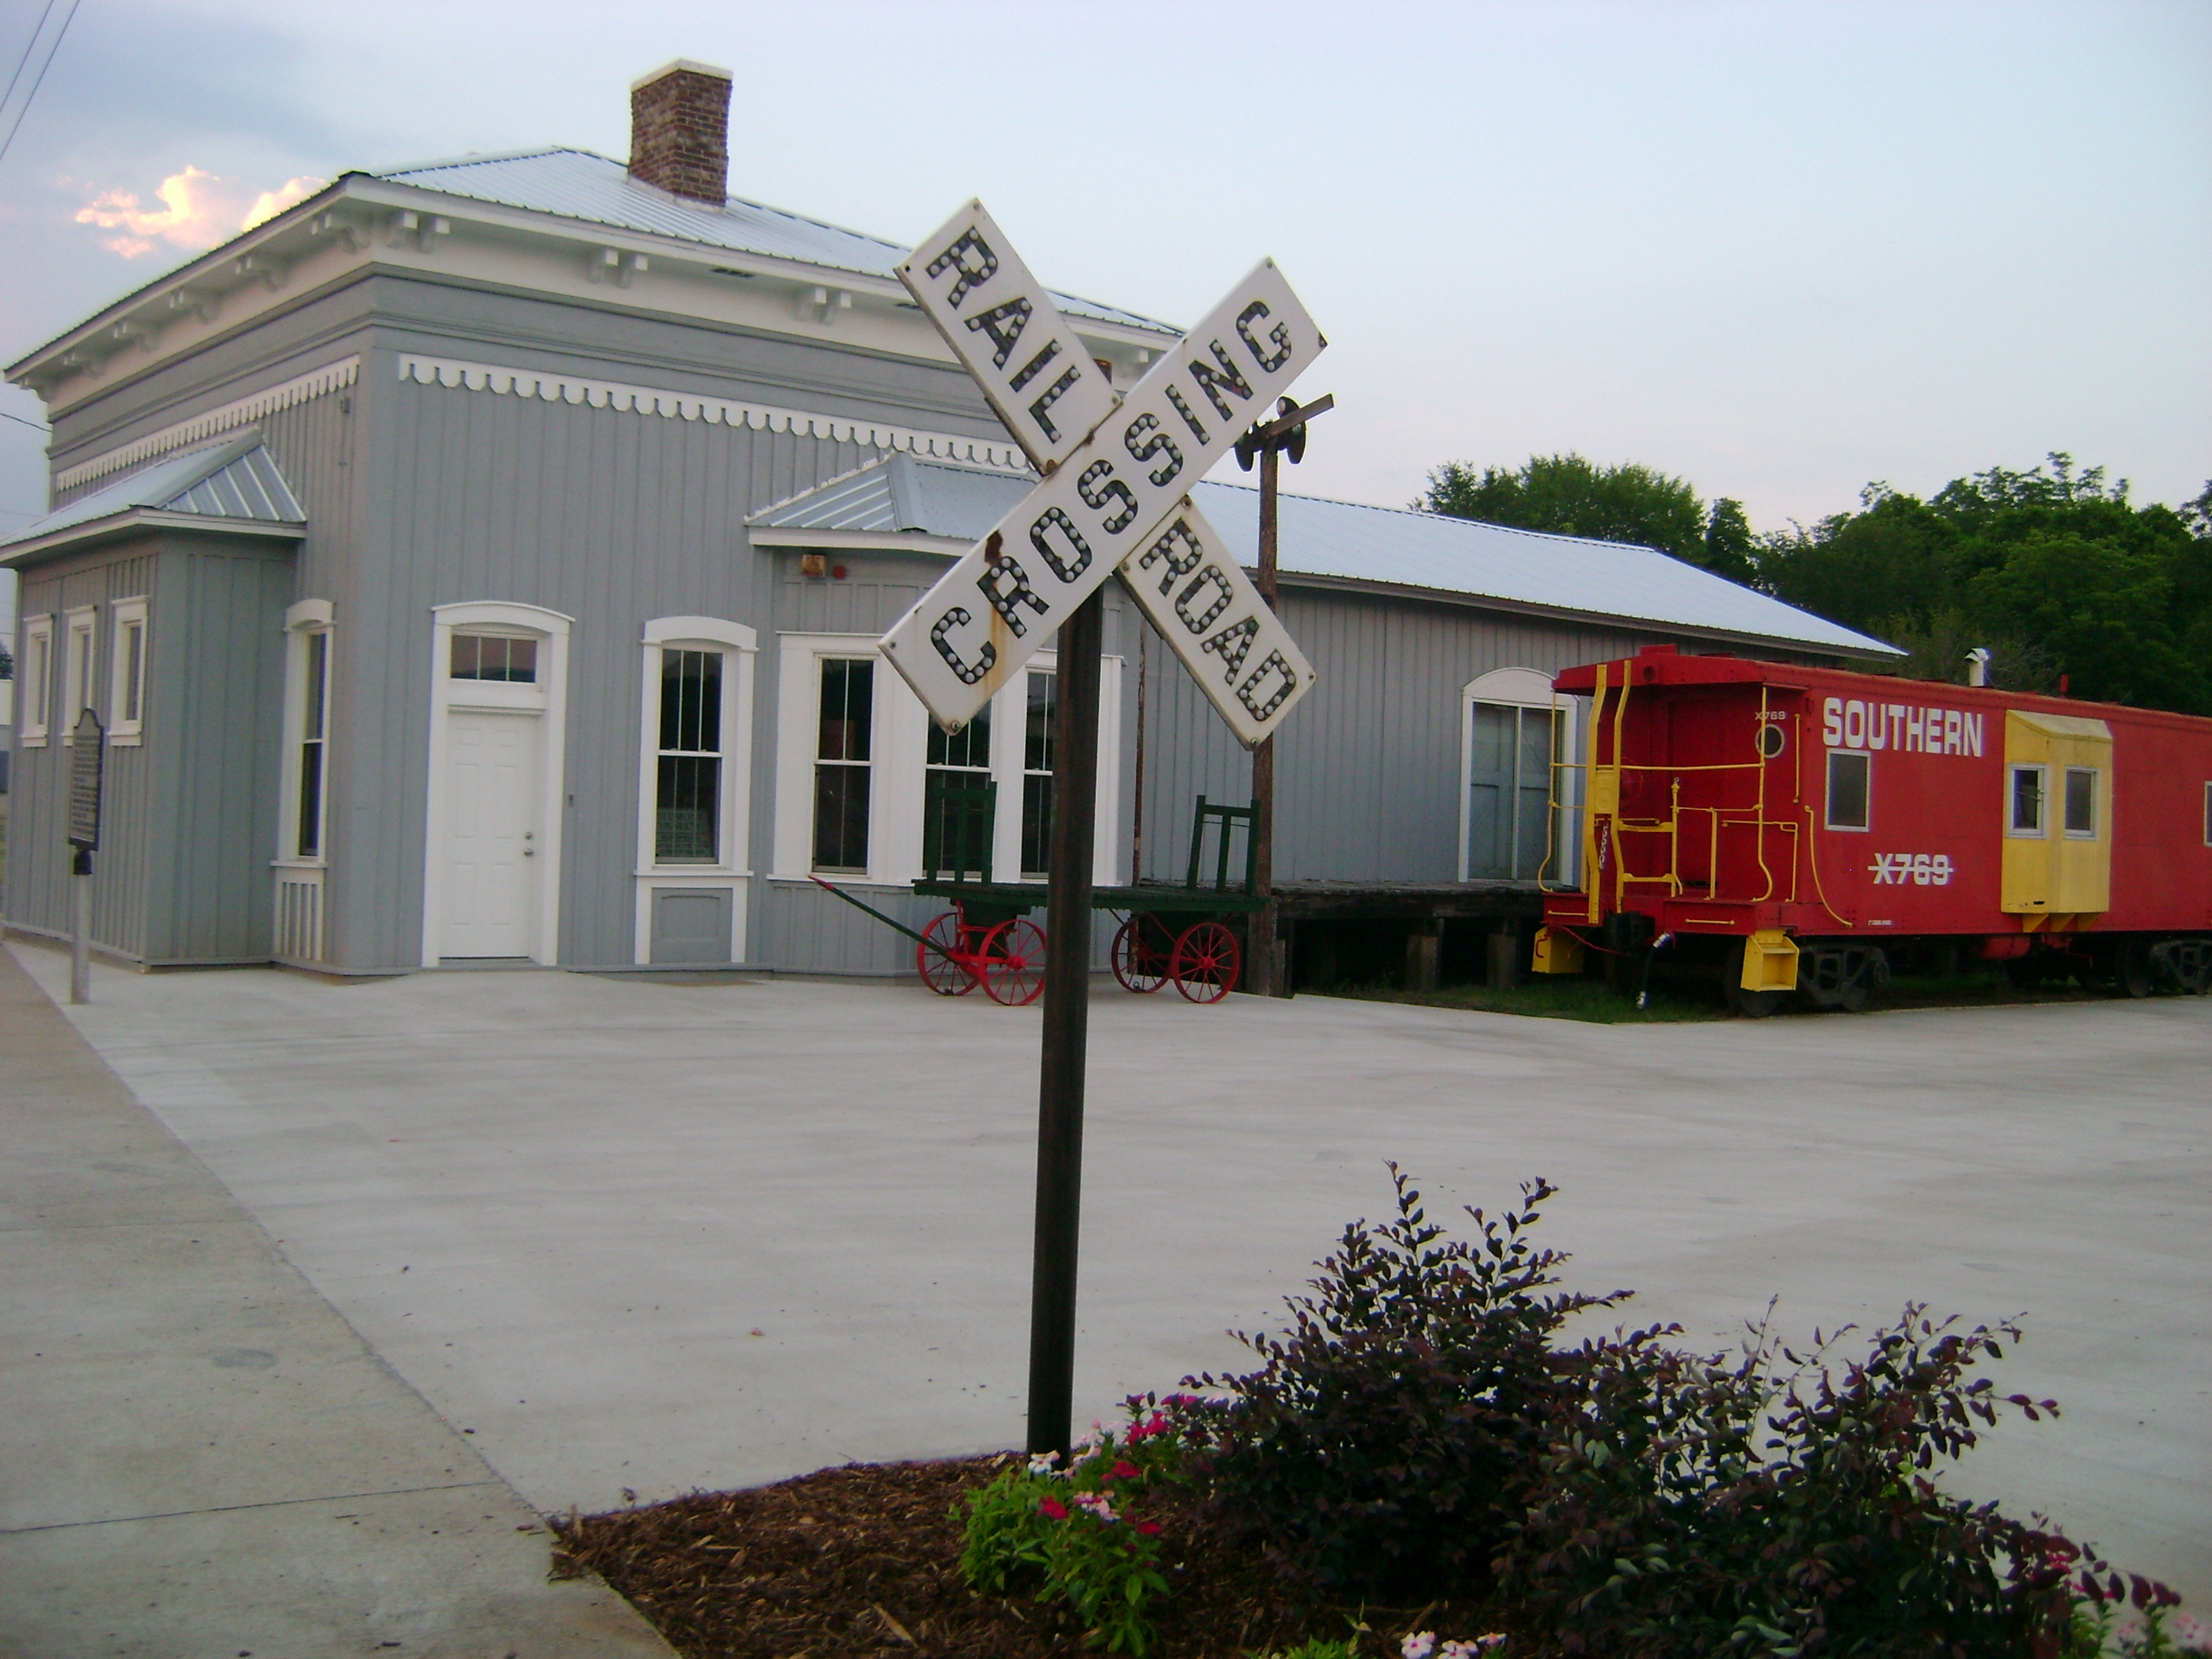 Piedmont Historical Society Southern Railroad Depot Museum